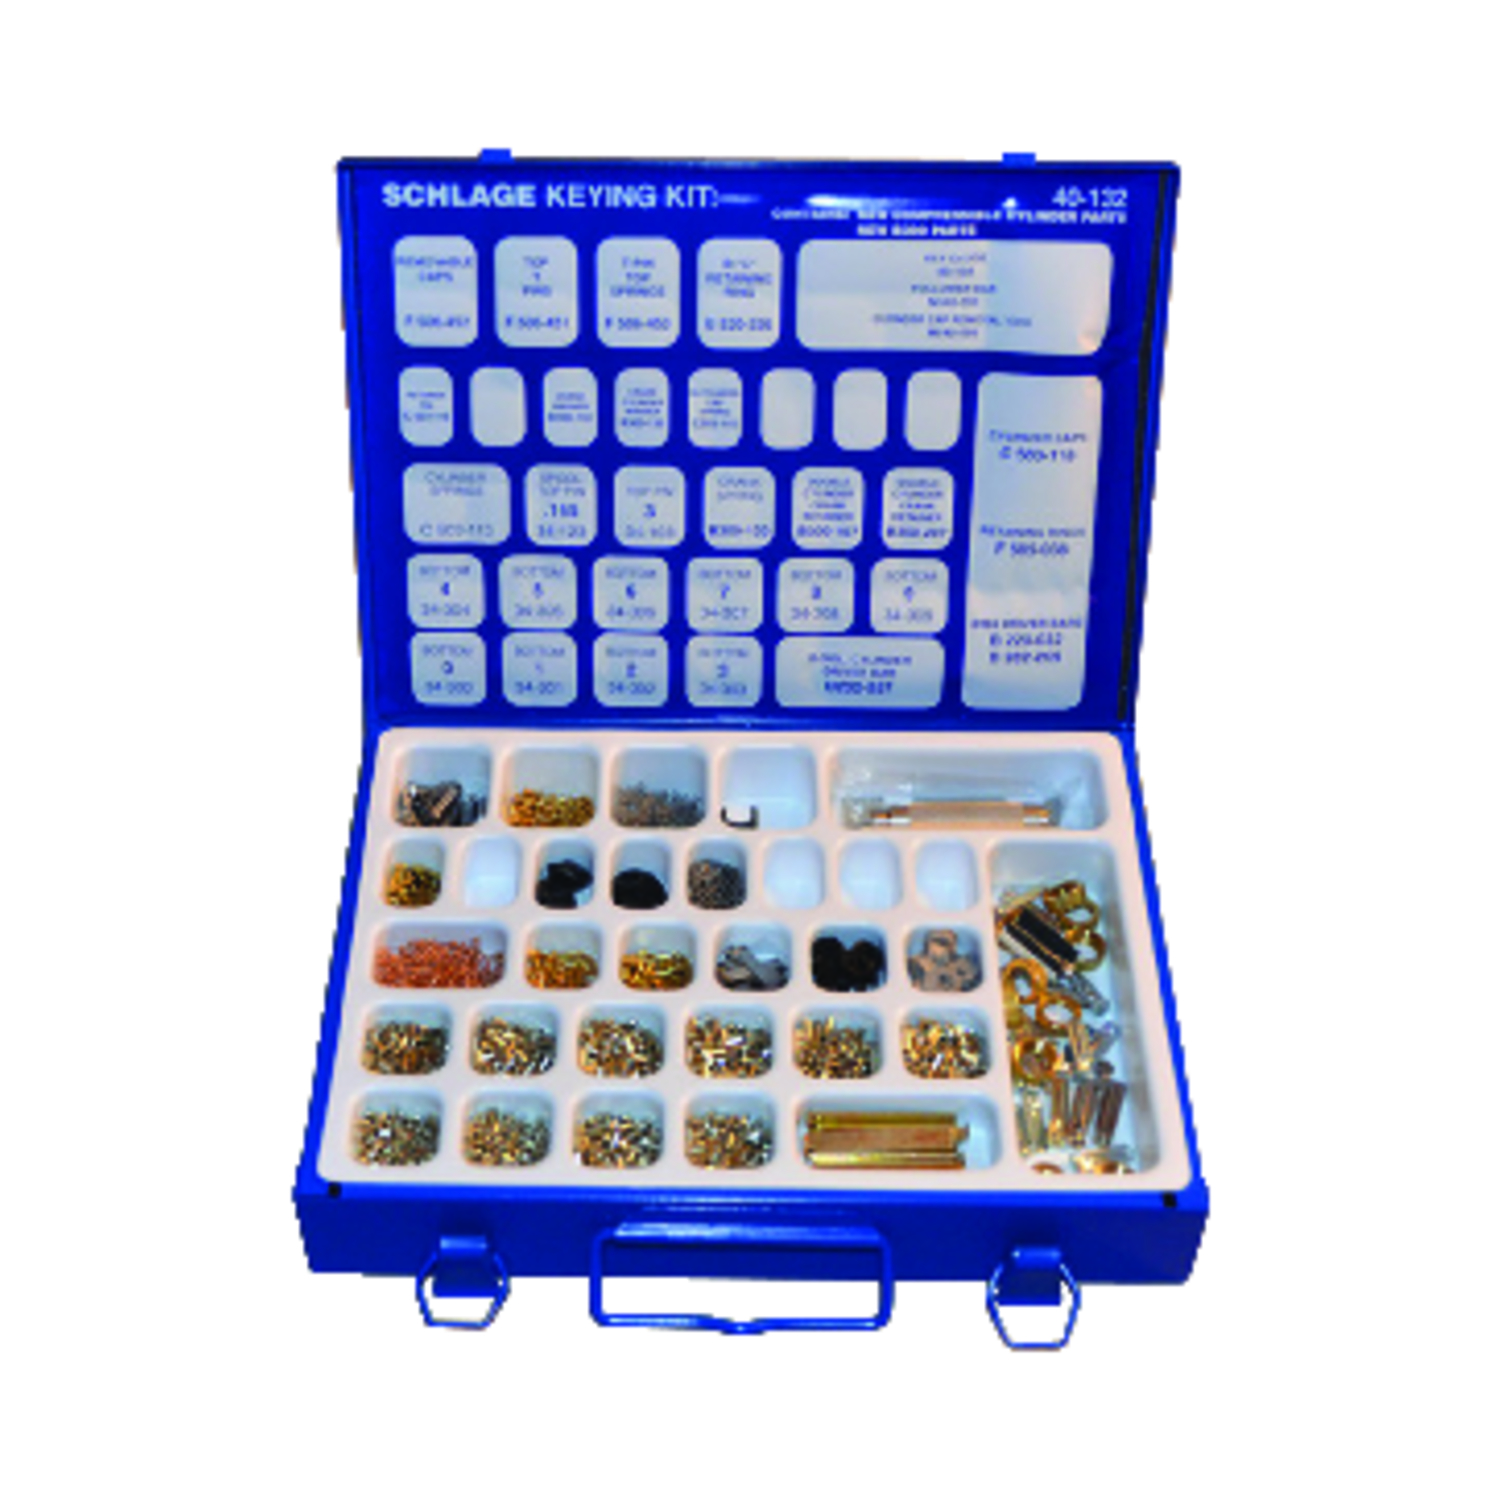 Key and Installation Kits